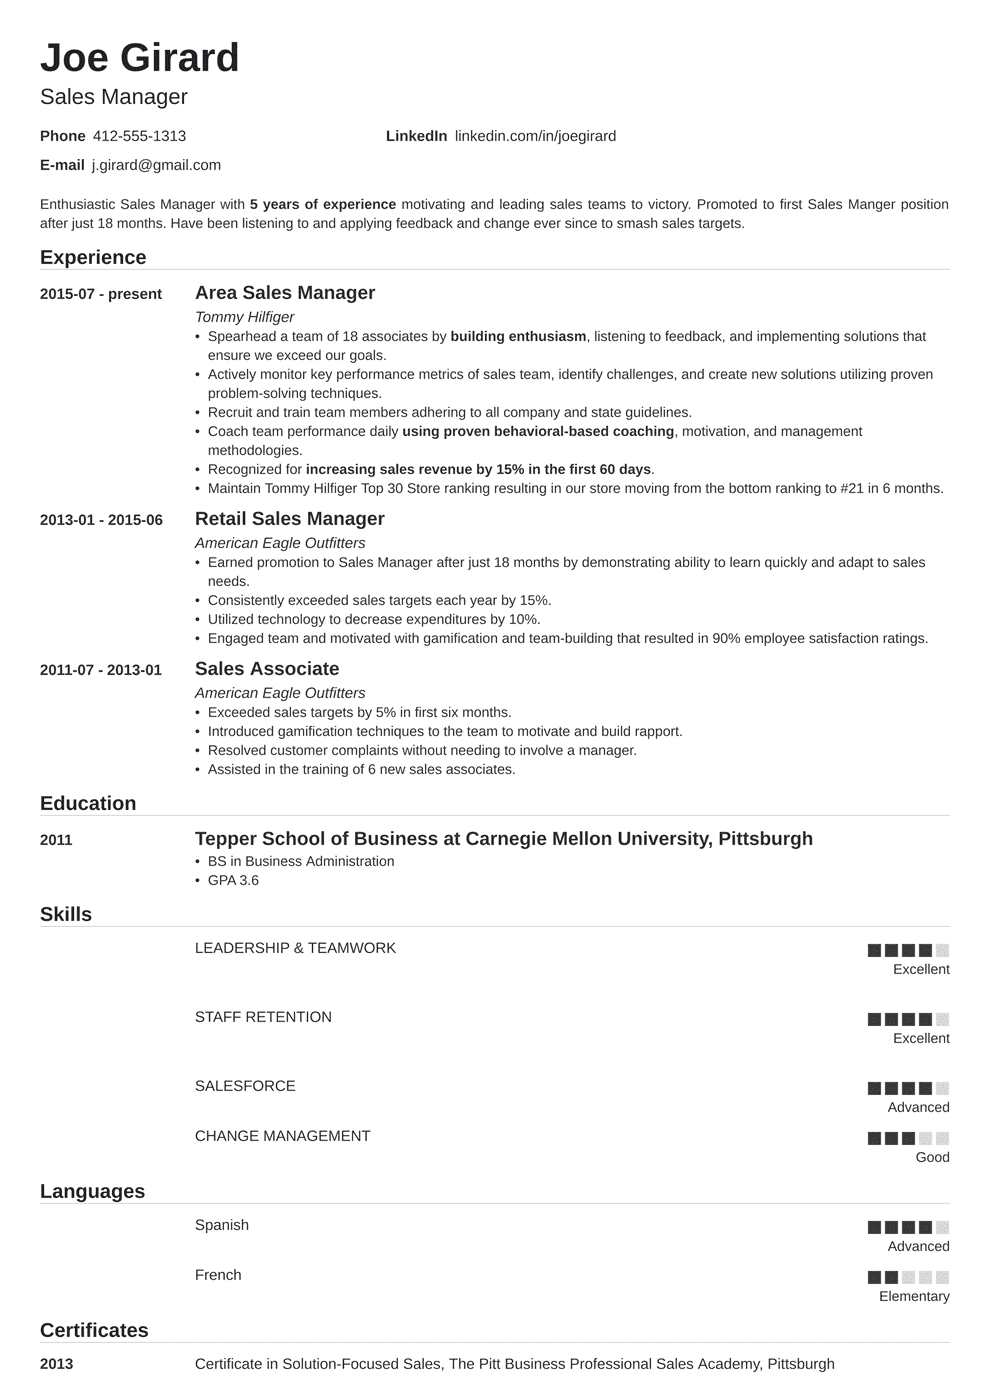 Sales Manager Resume Examples [Templates & Key Skills